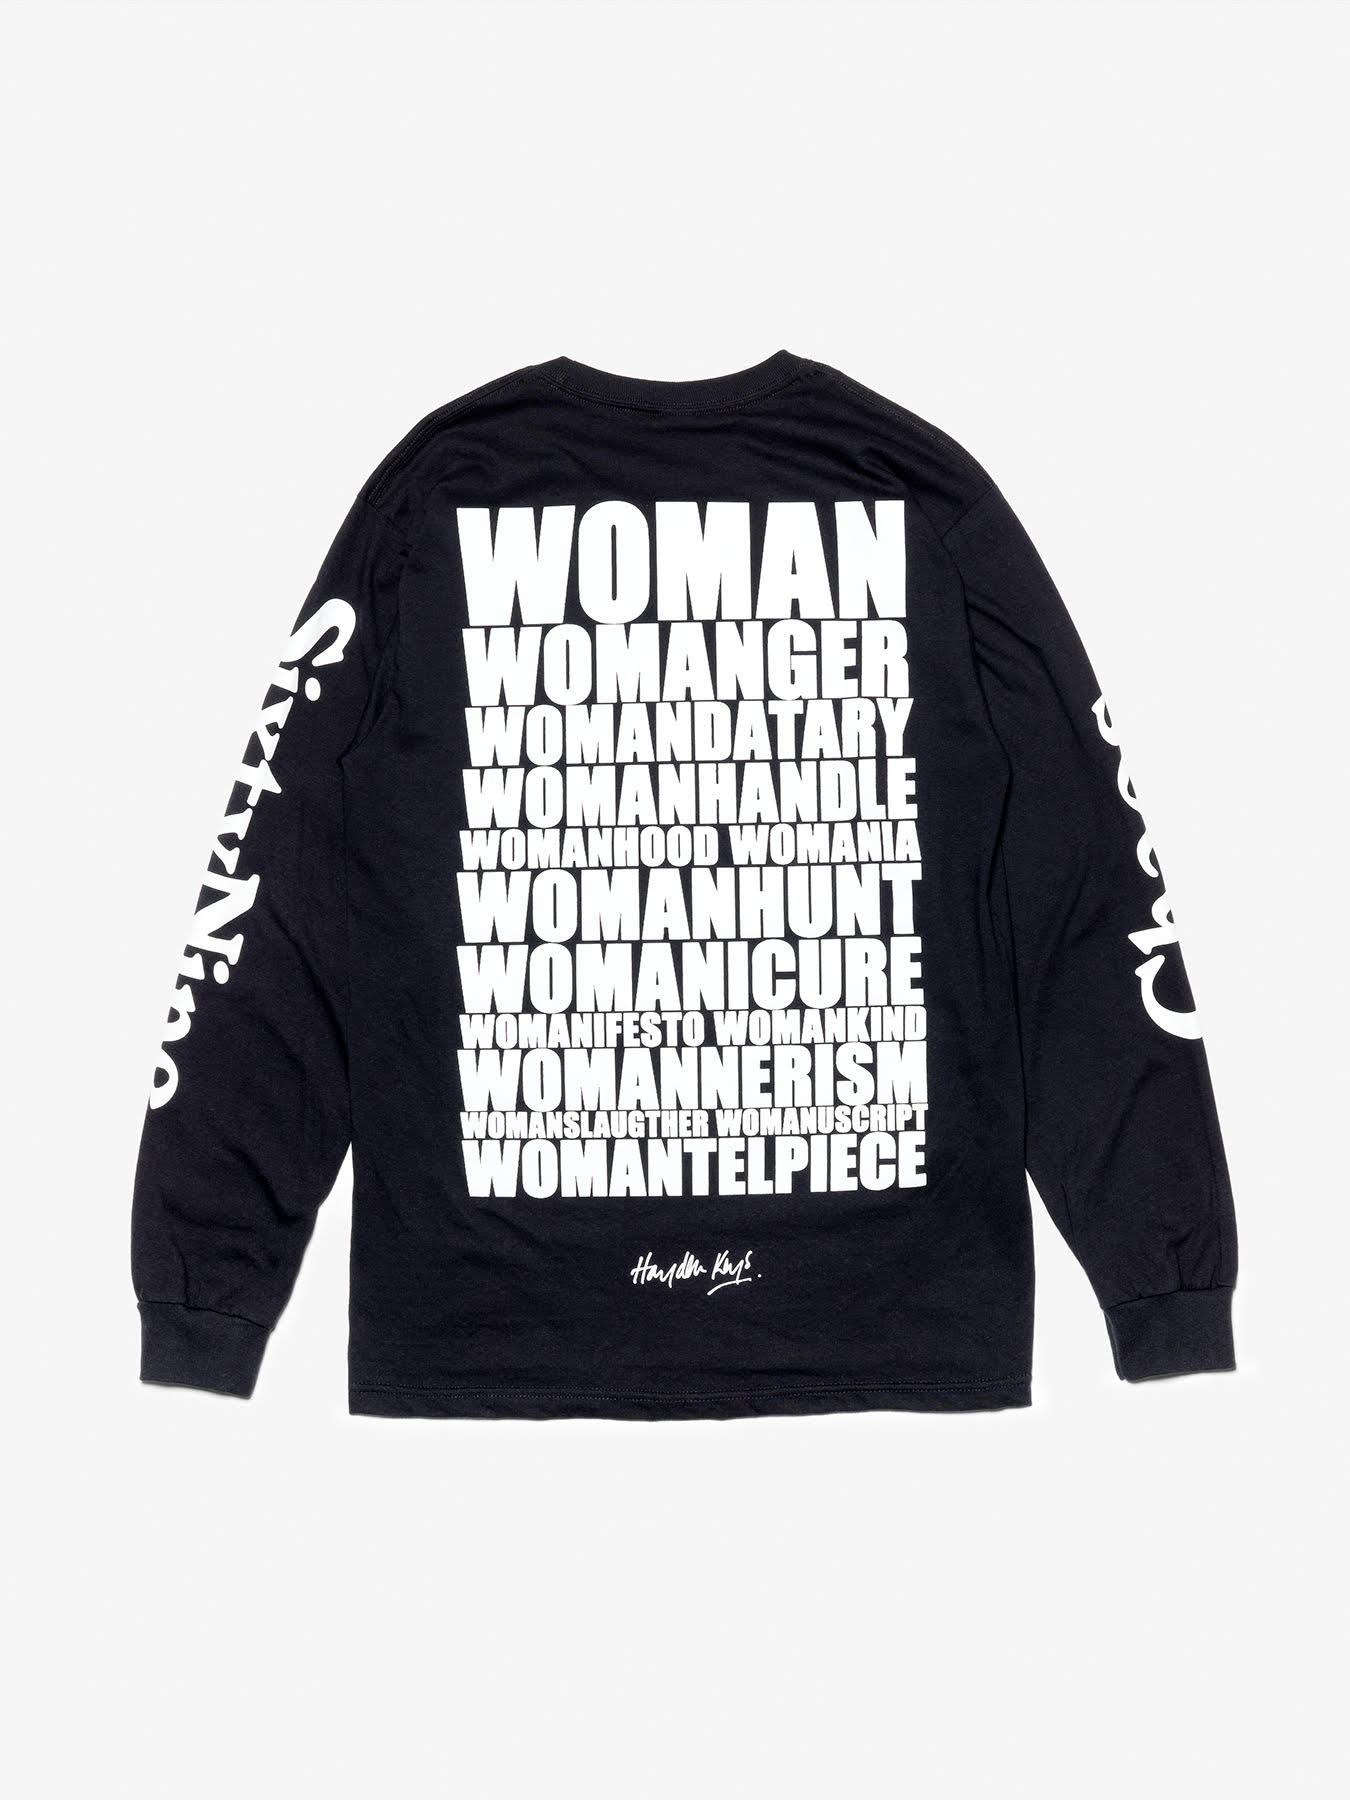 Chaos SixtyNine 'Womanipulate' Long Sleeved T-shirt